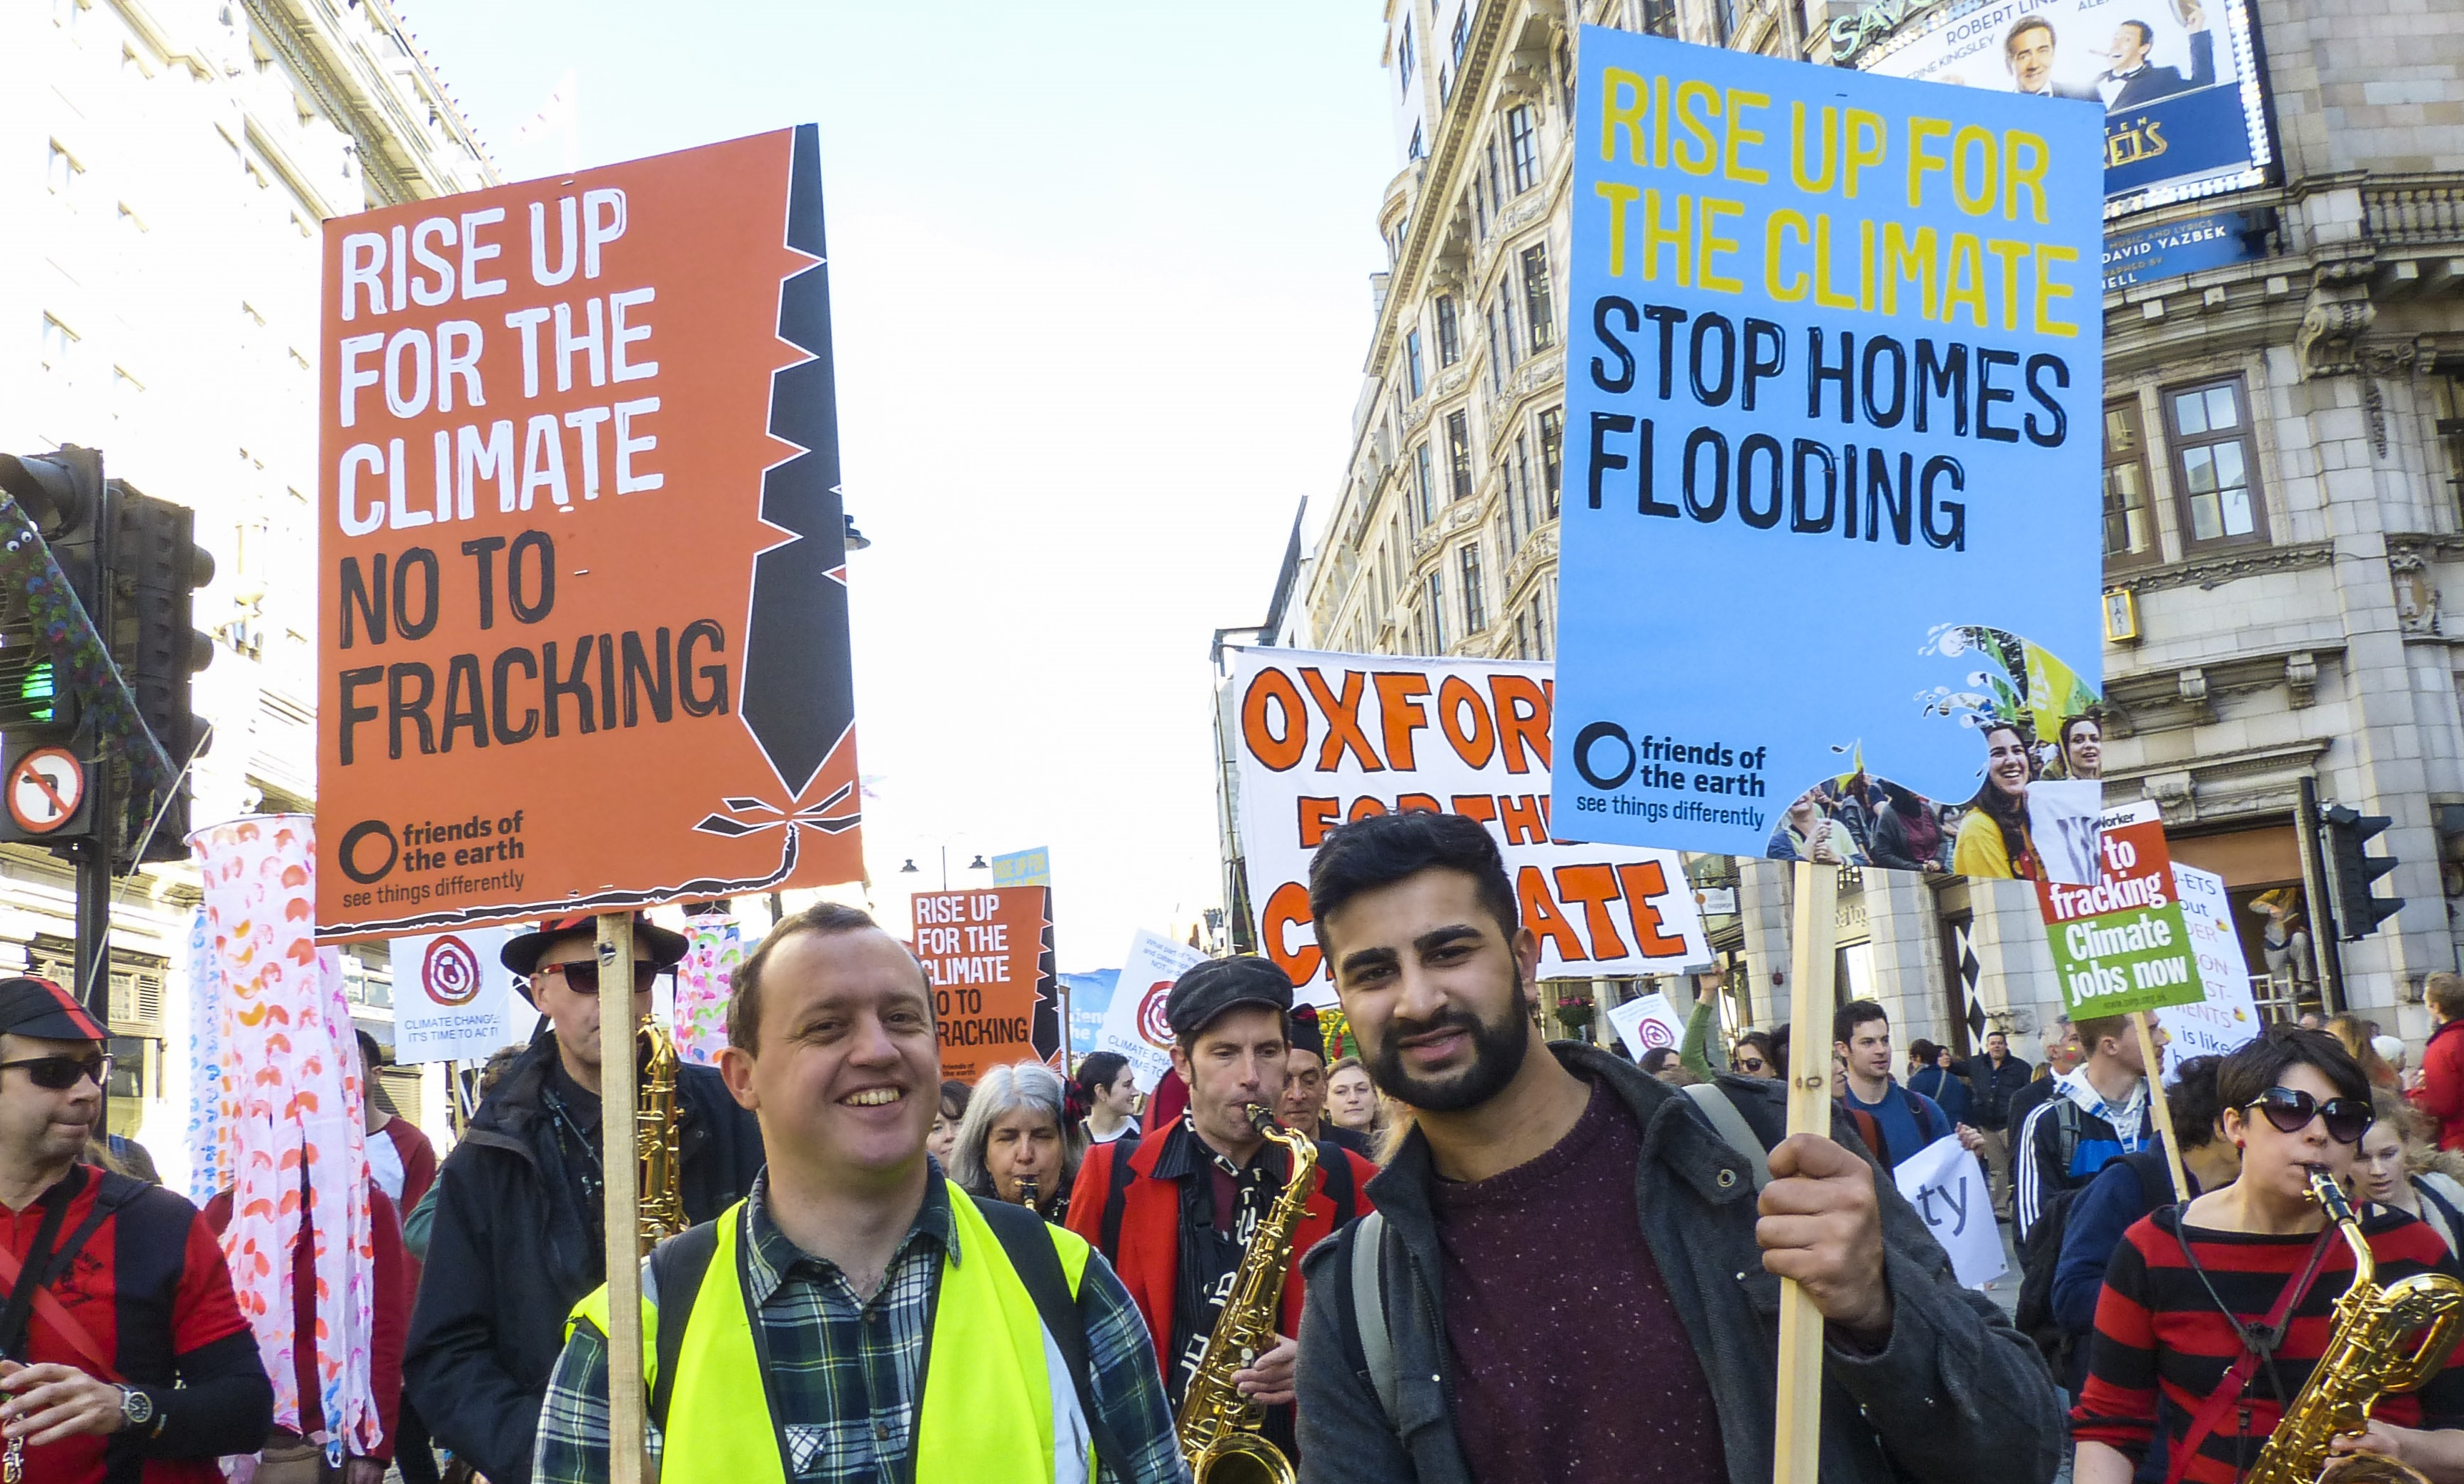 Anti-fracking placards at the climate march